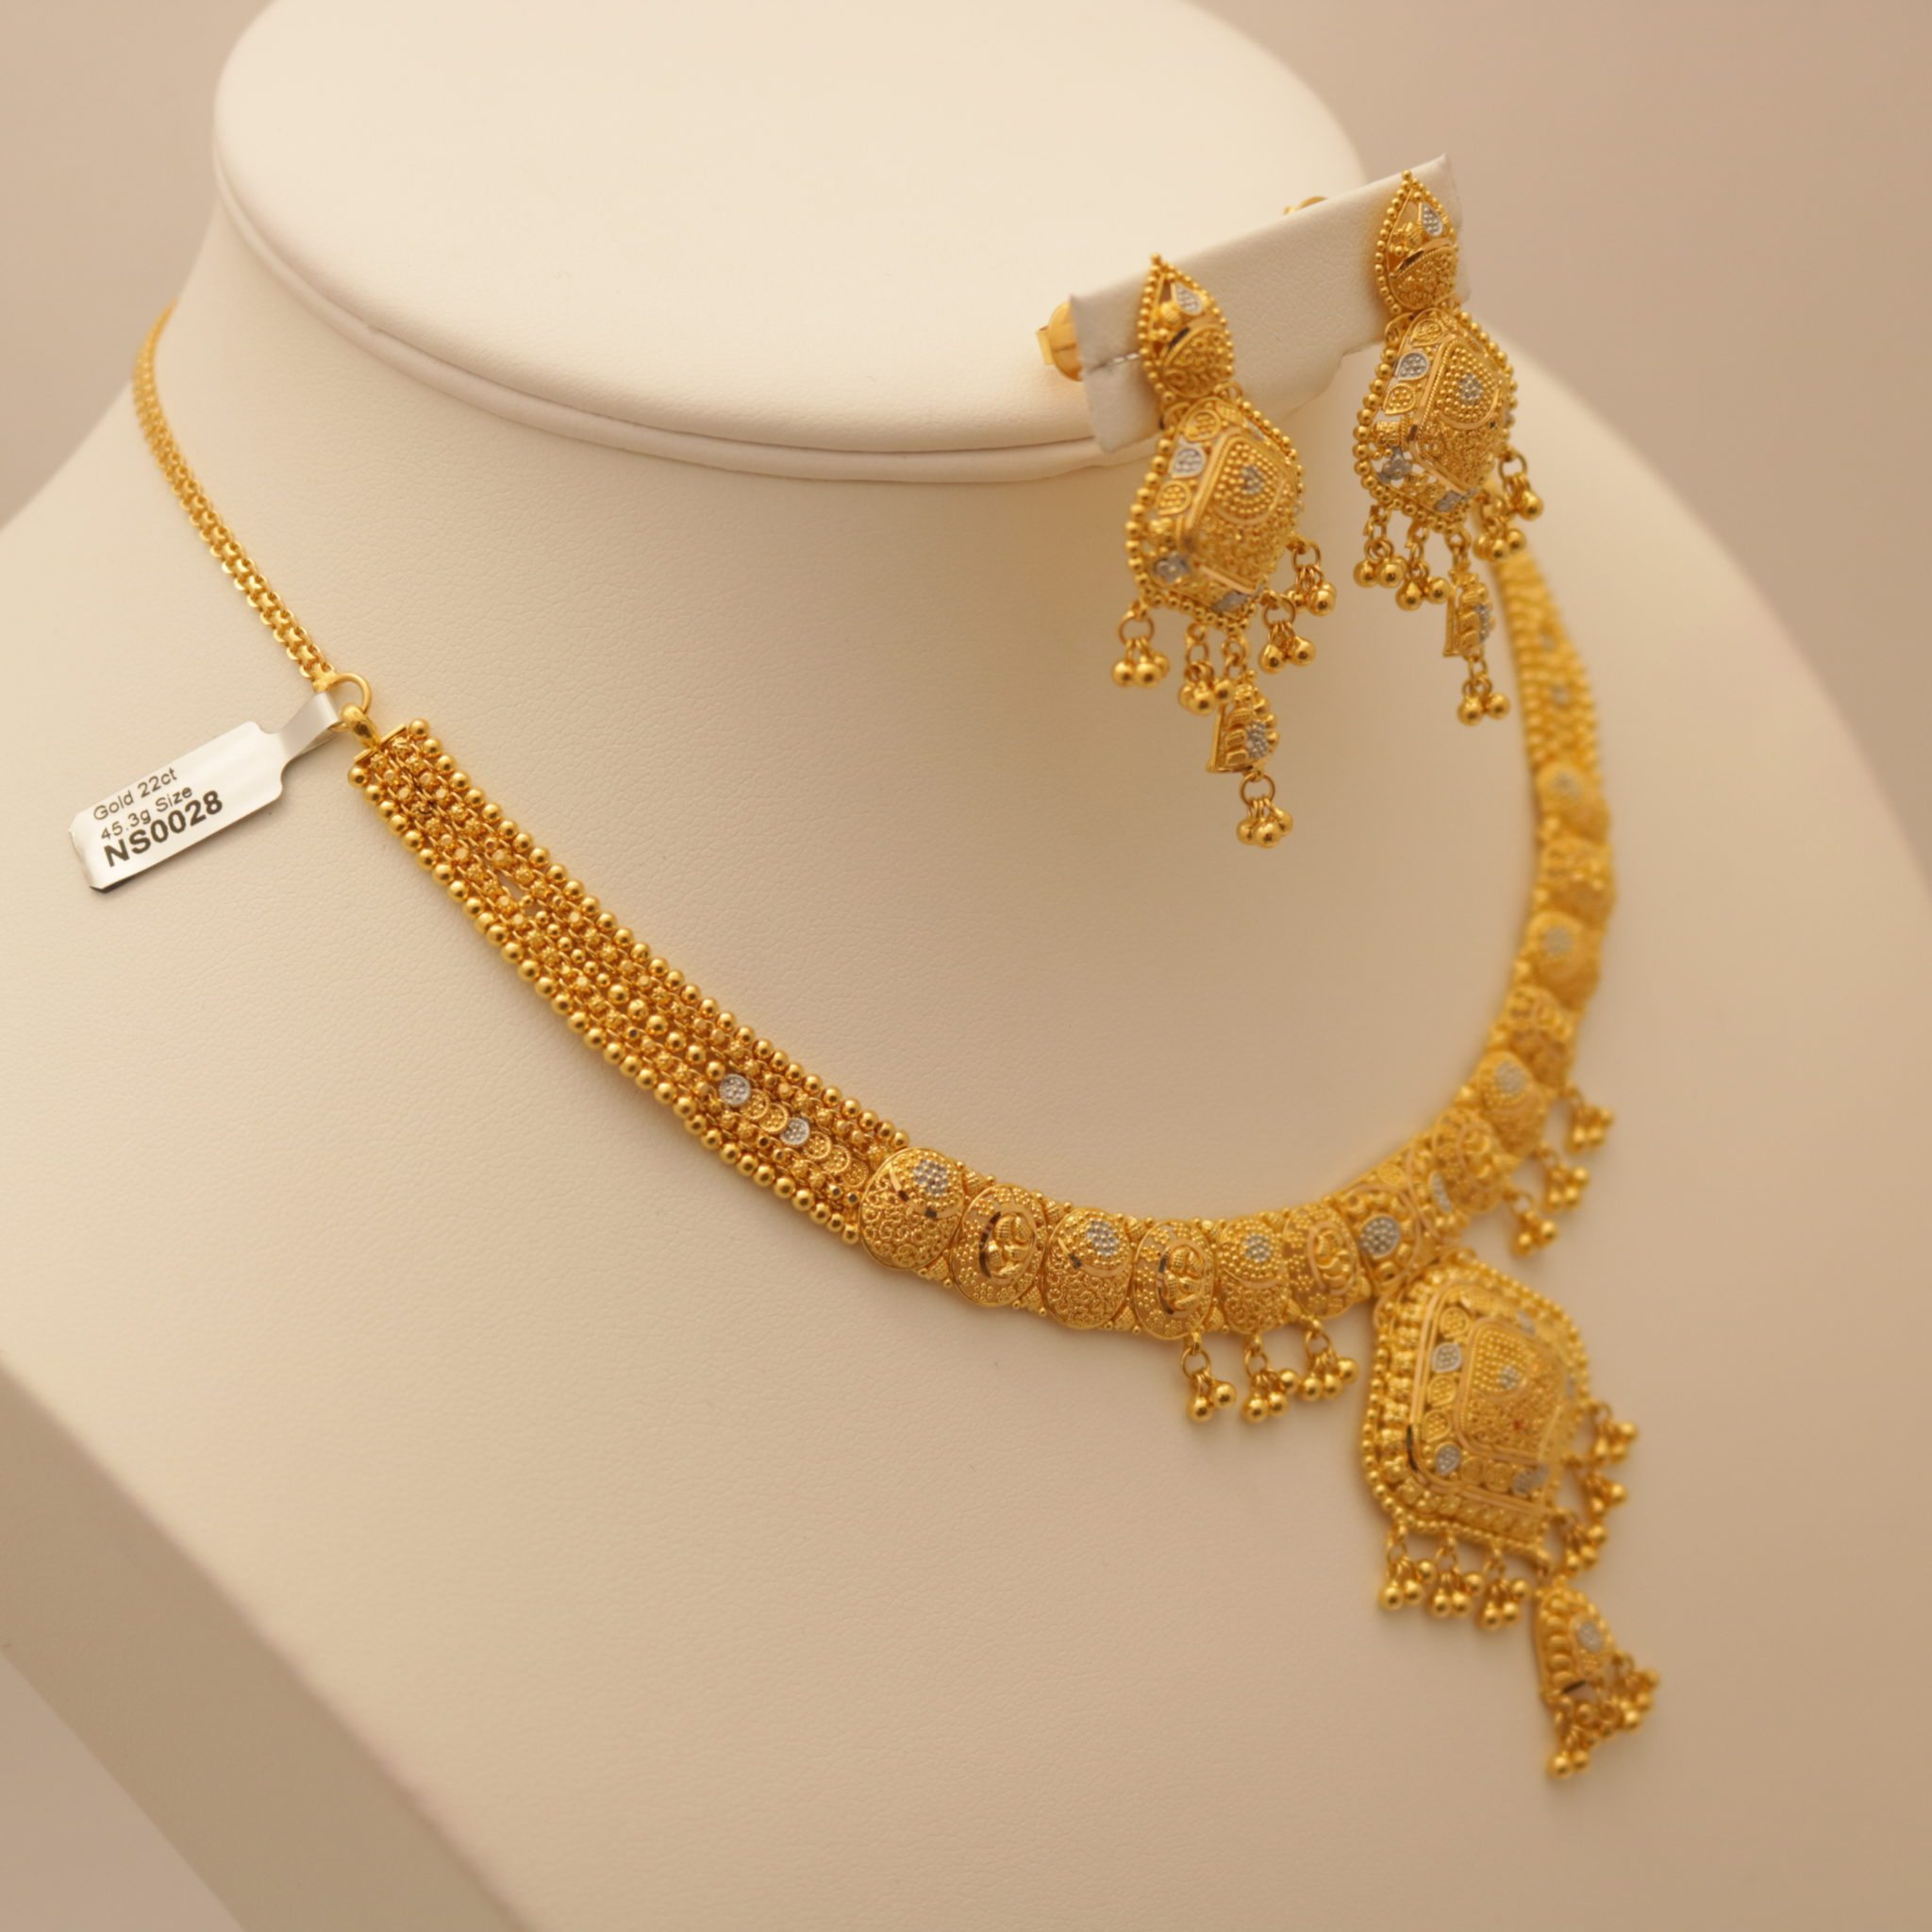 22 Carat Indian Gold Necklace Set 45 3 Grams Gold Forever